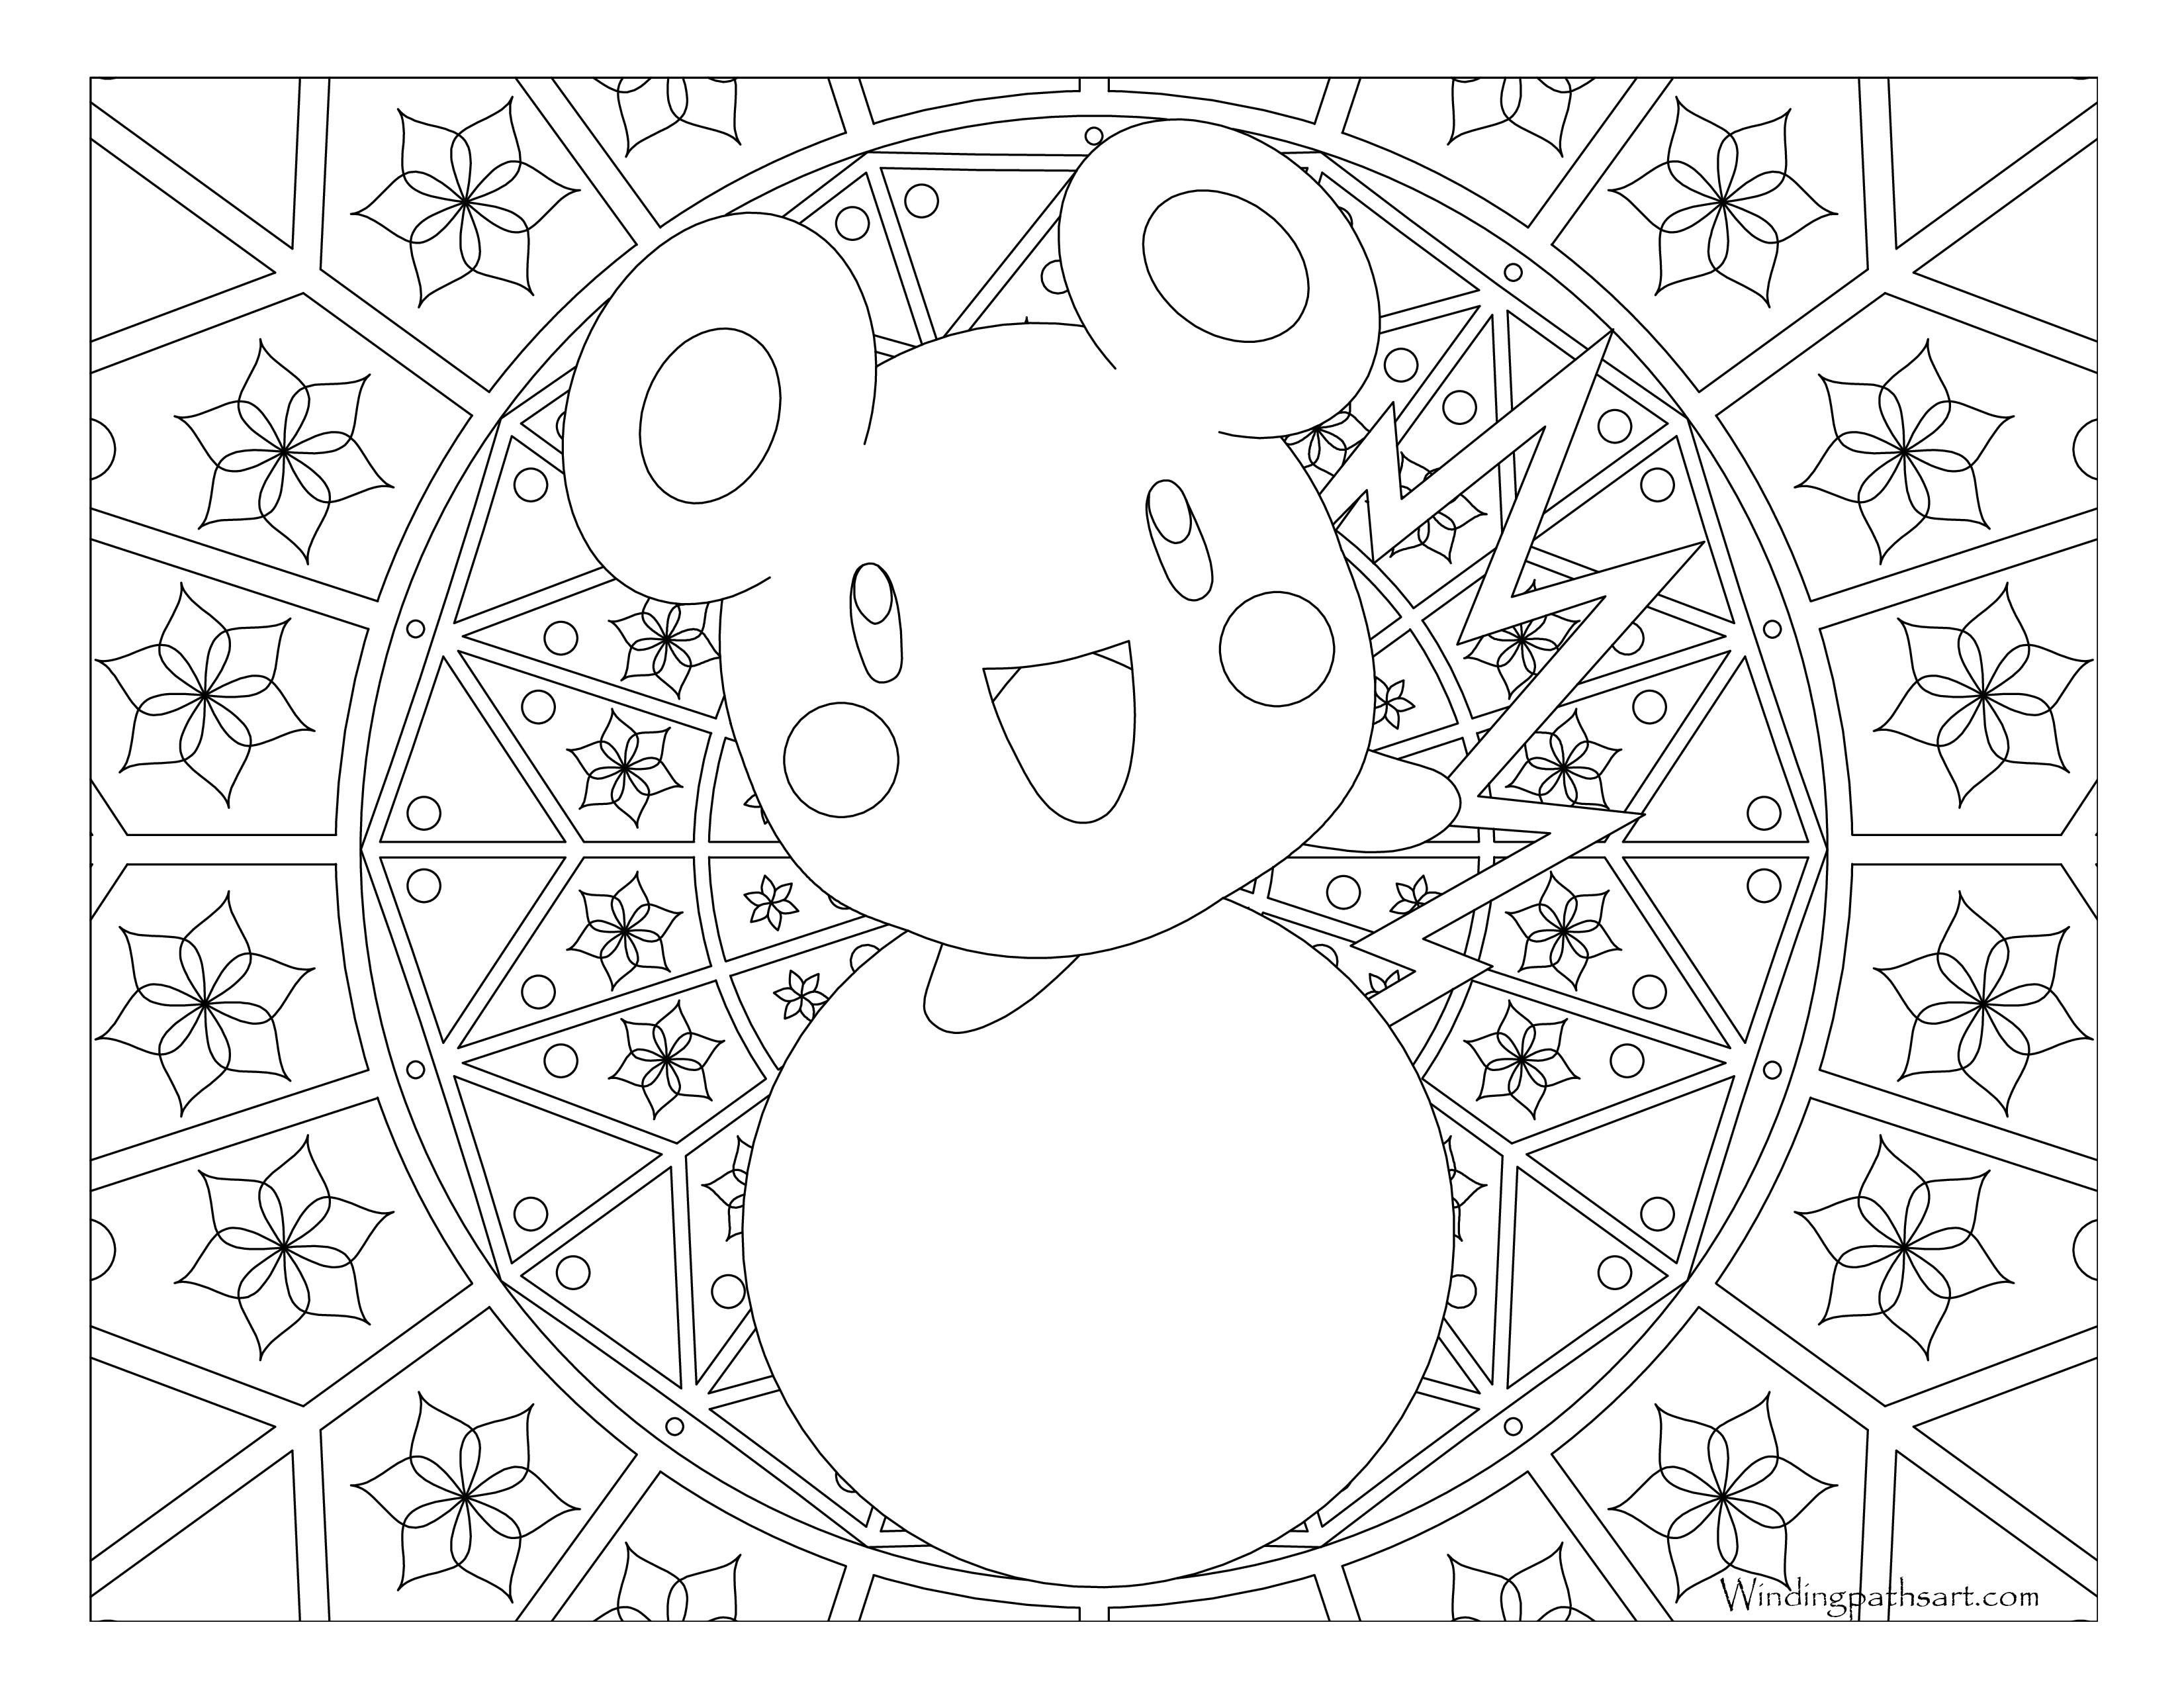 stantler pokemon coloring pages - photo#34